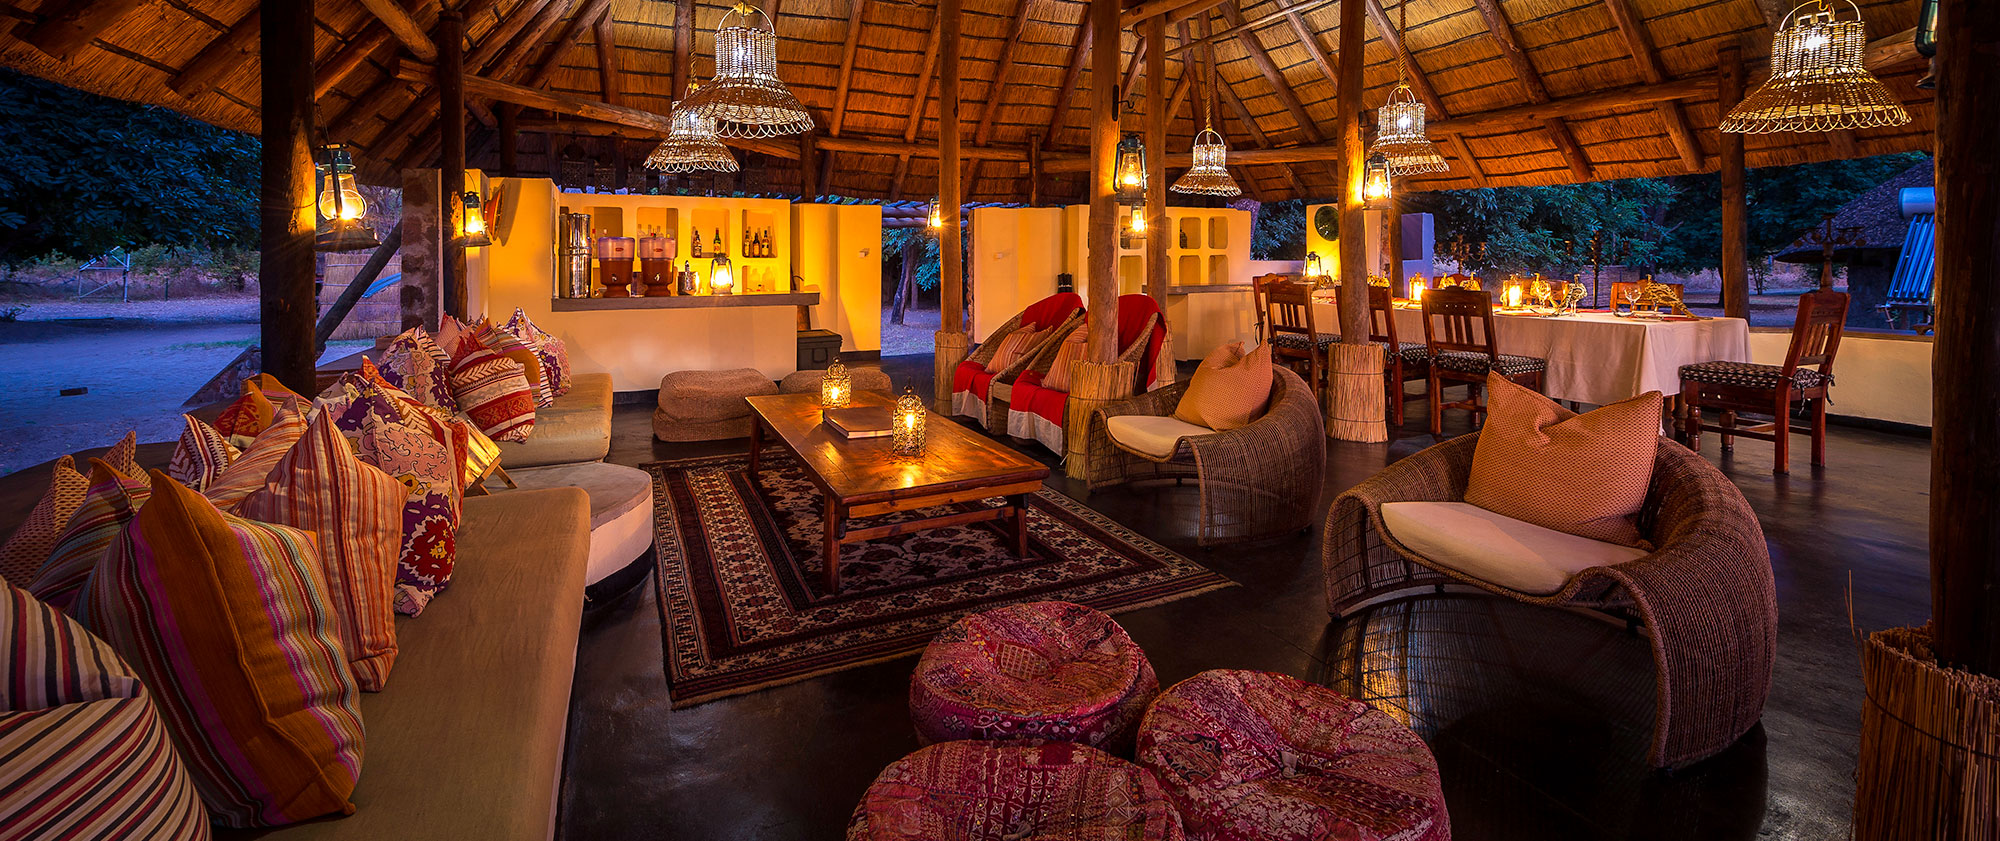 Zambia Safari - Remote Luxury Package - Kapamba Bushcamp